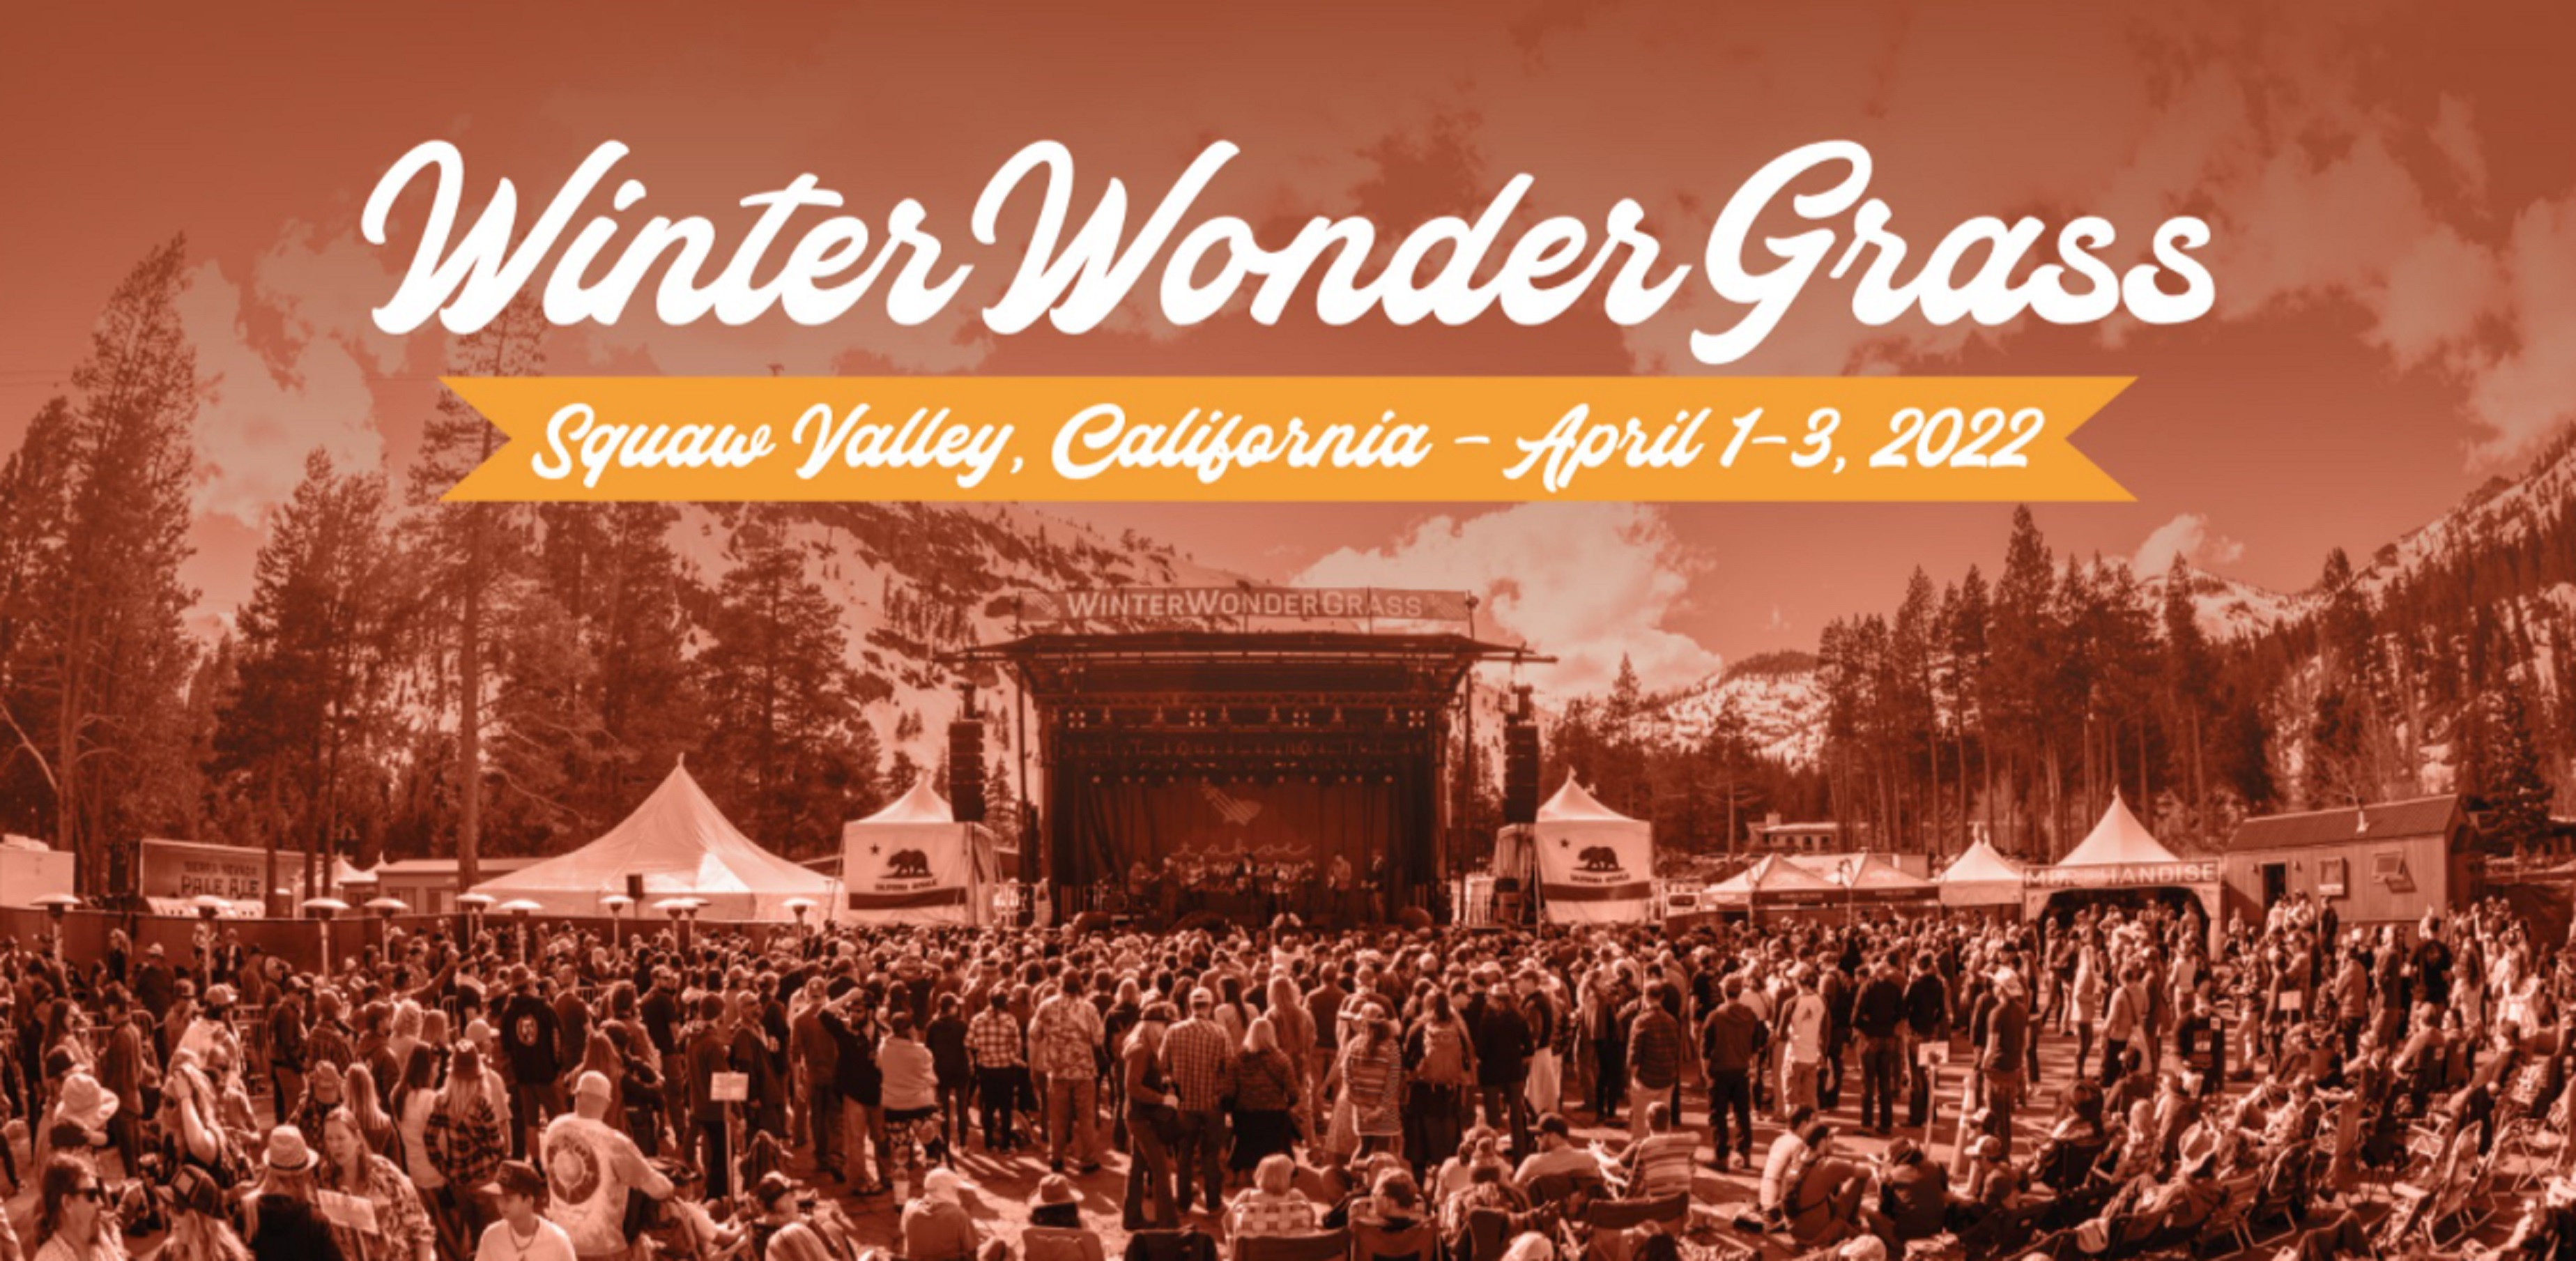 WinterWonderGrass Announces Postponement of Squaw Valley, CA Festival to April 1-3, 2022